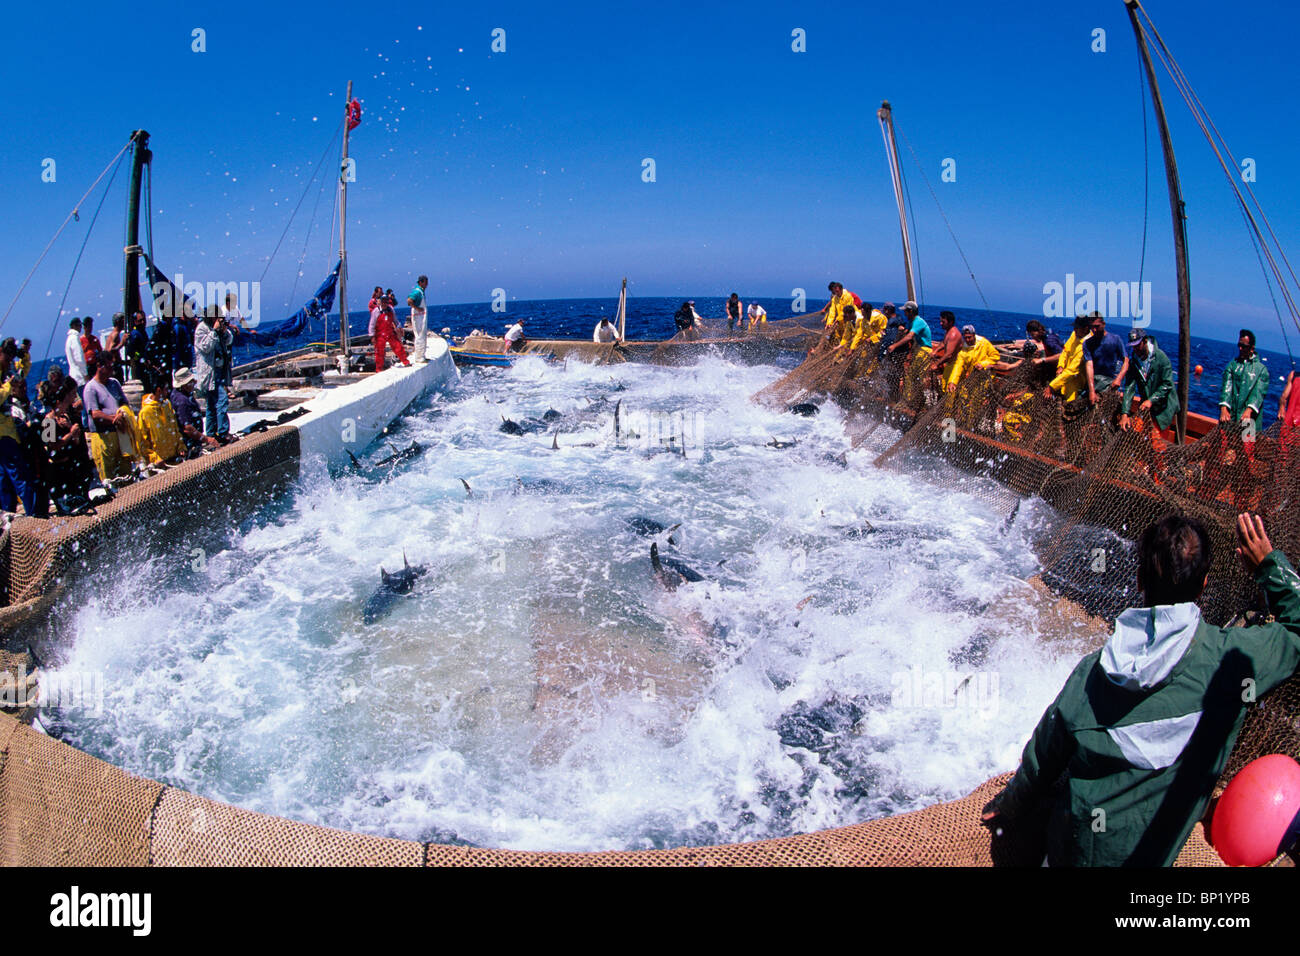 Bluefin Tuna Fishing at Mediterranean Sea, Thunnus thynnus, San Pietro Island, Sardinia, Italy - Stock Image